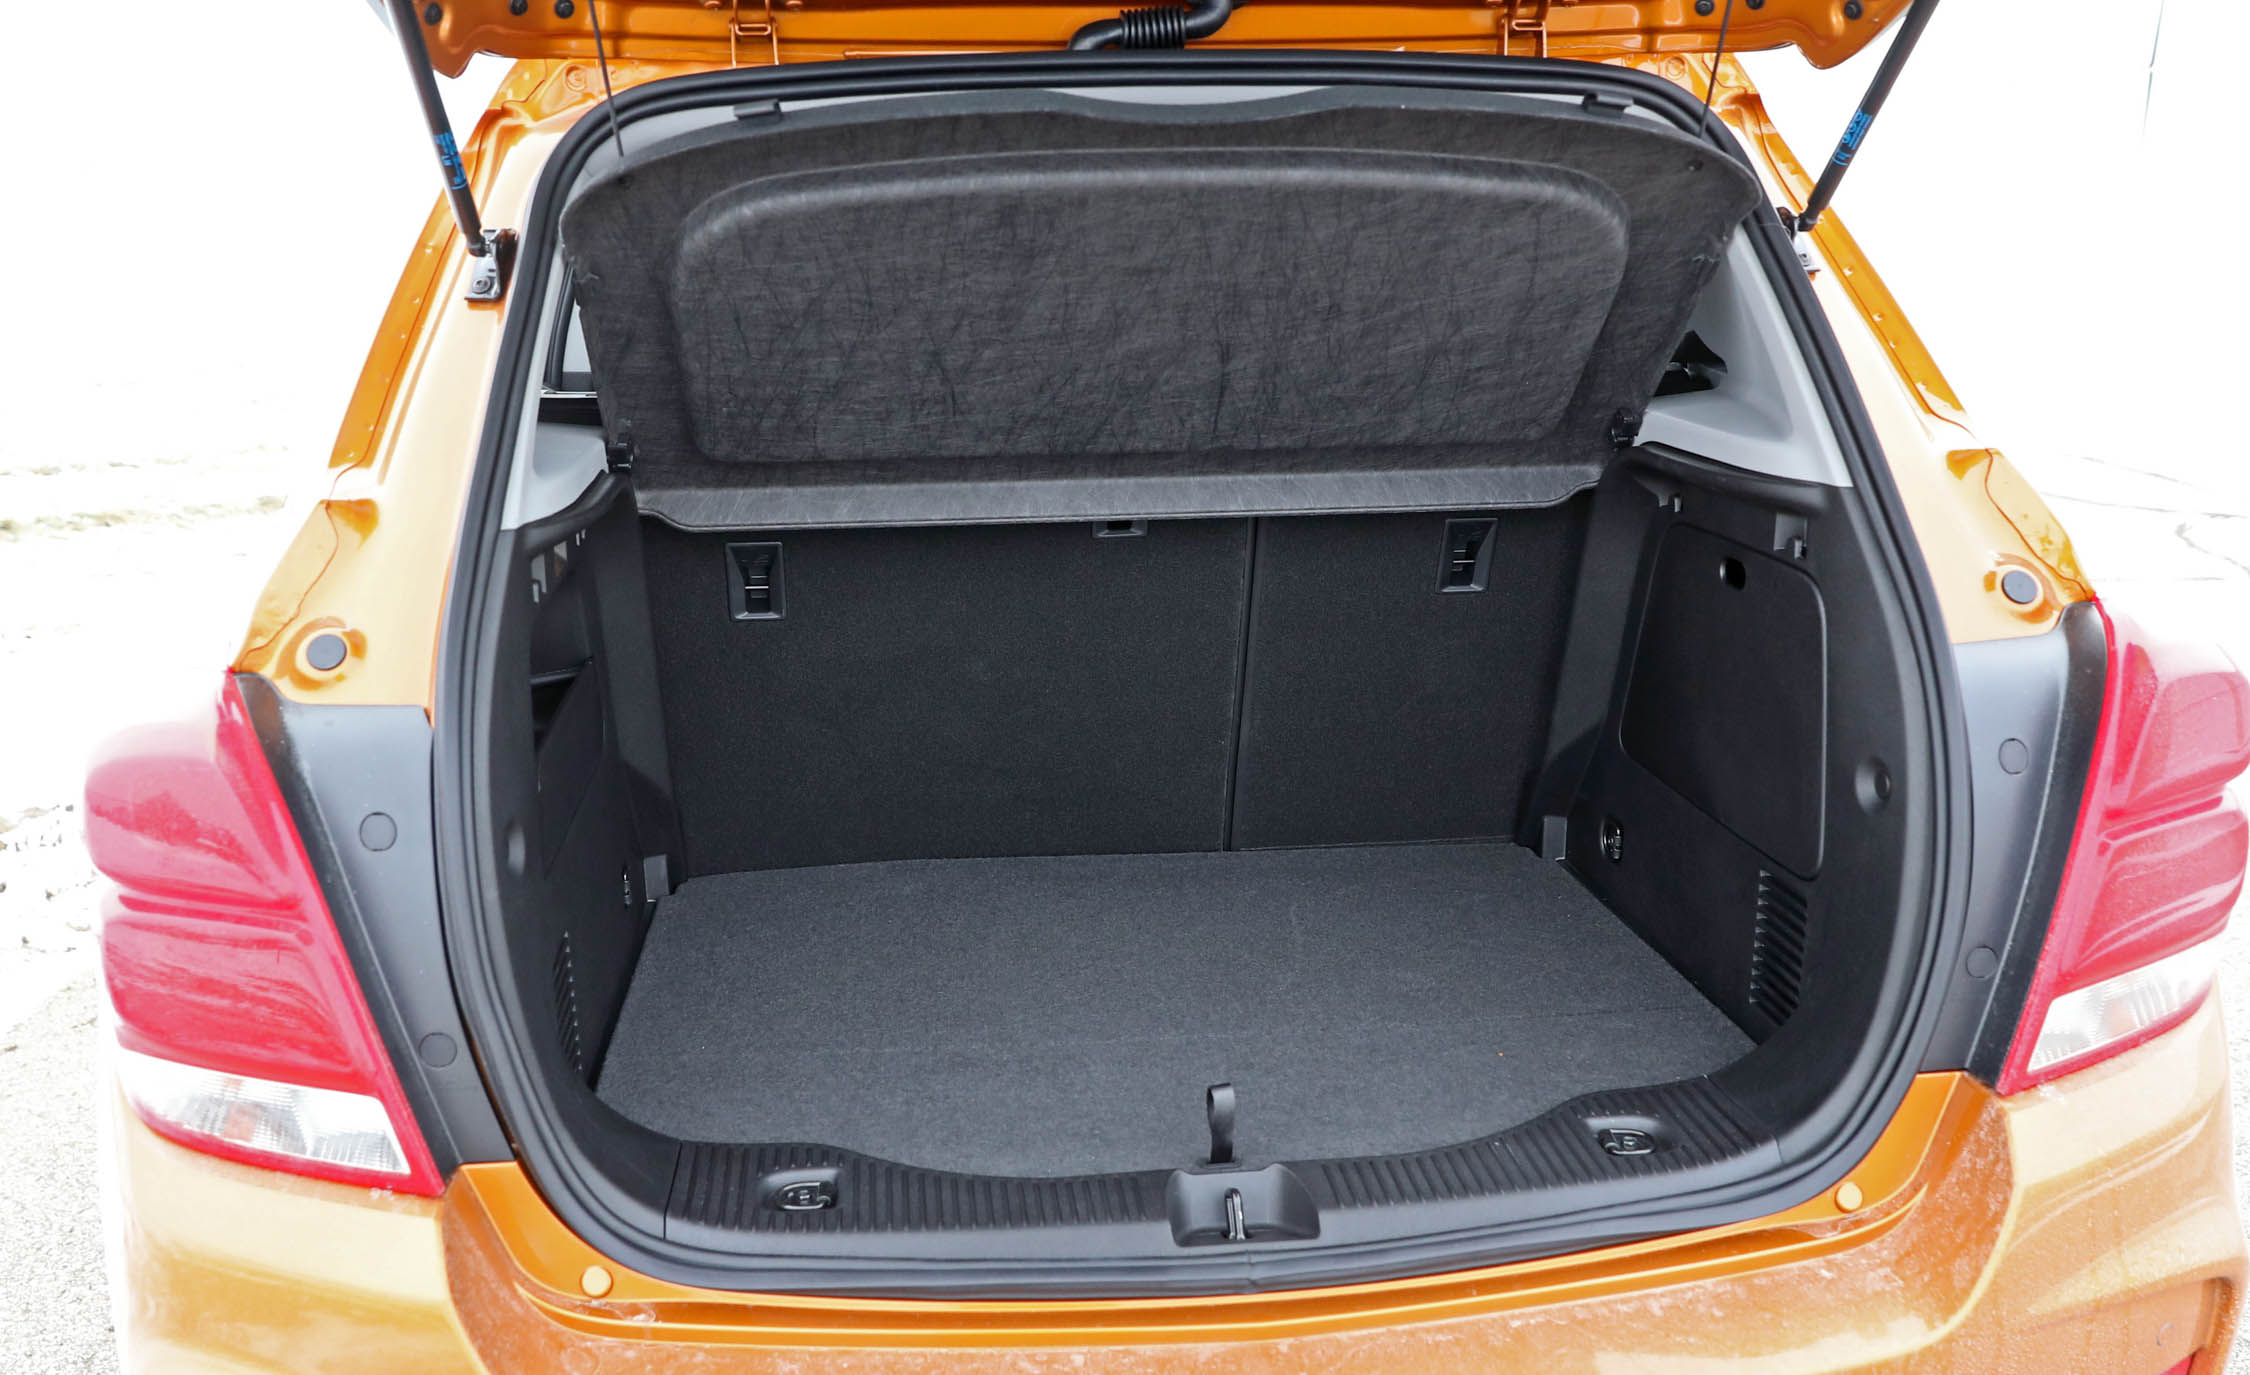 2017 Chevrolet Trax View Cargo (Photo 45 of 47)